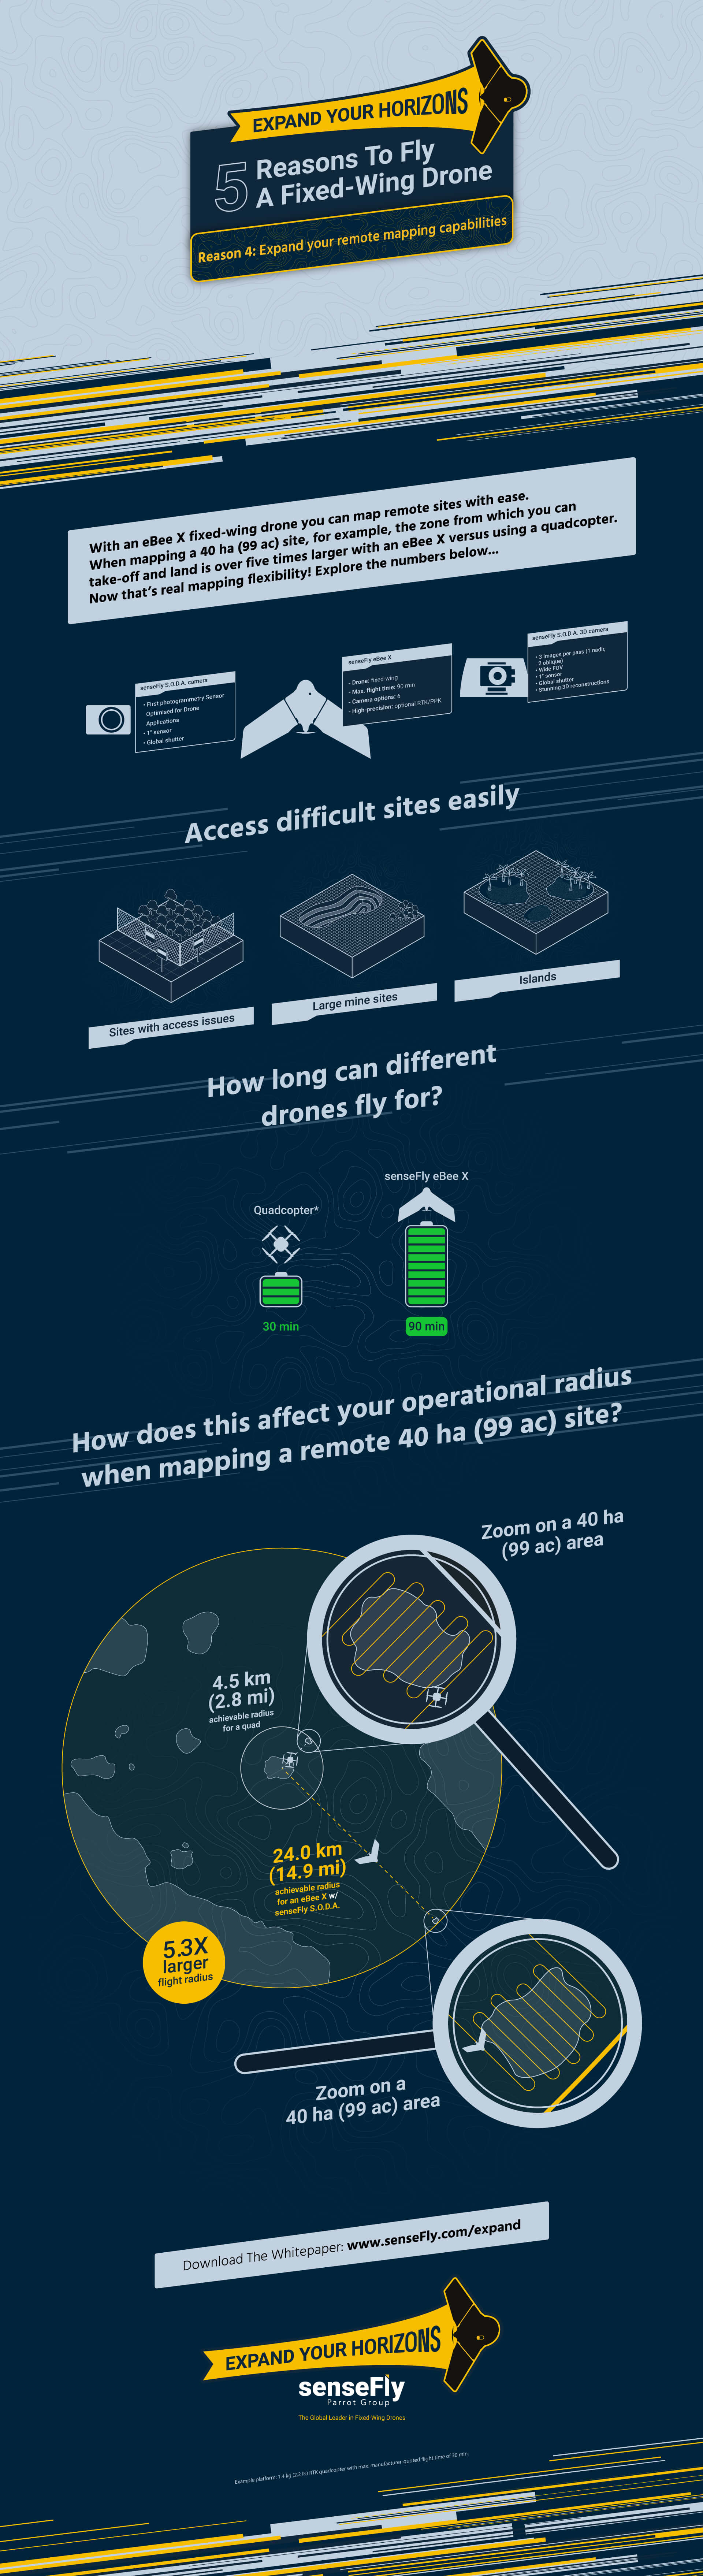 Infographic Reason 4: Expand your remote mapping capabilities